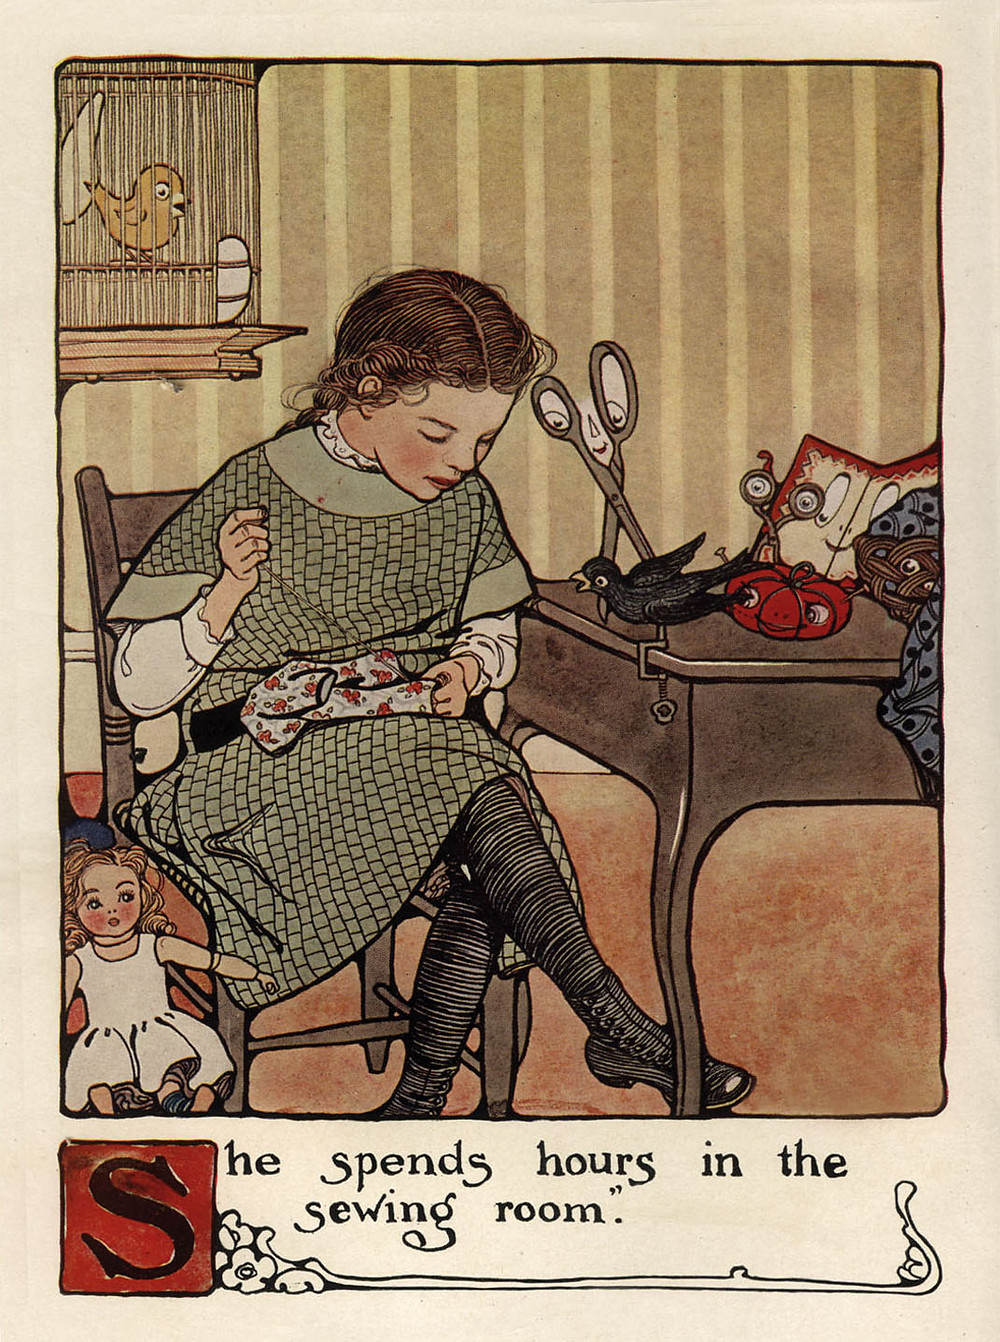 Image from Mary Frances Sewing Book